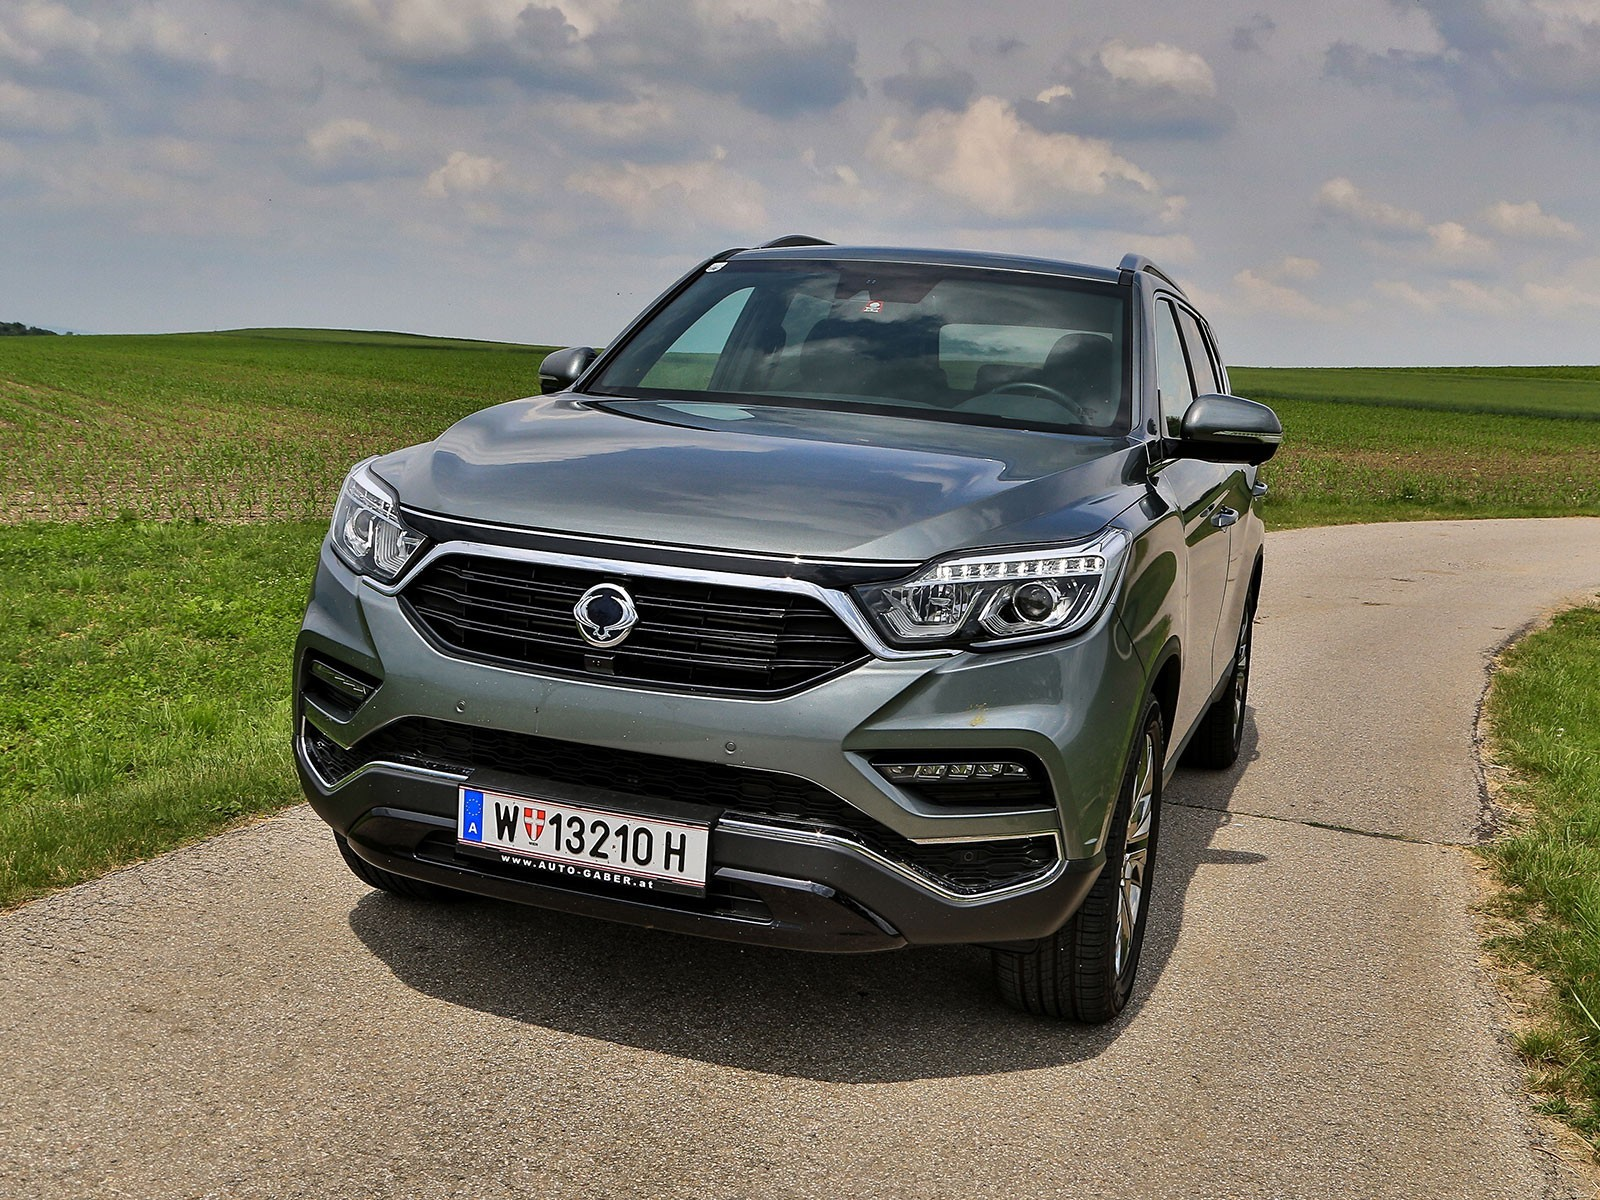 Ssangyong rexton g4 2 2 4wd at icon testbericht 014